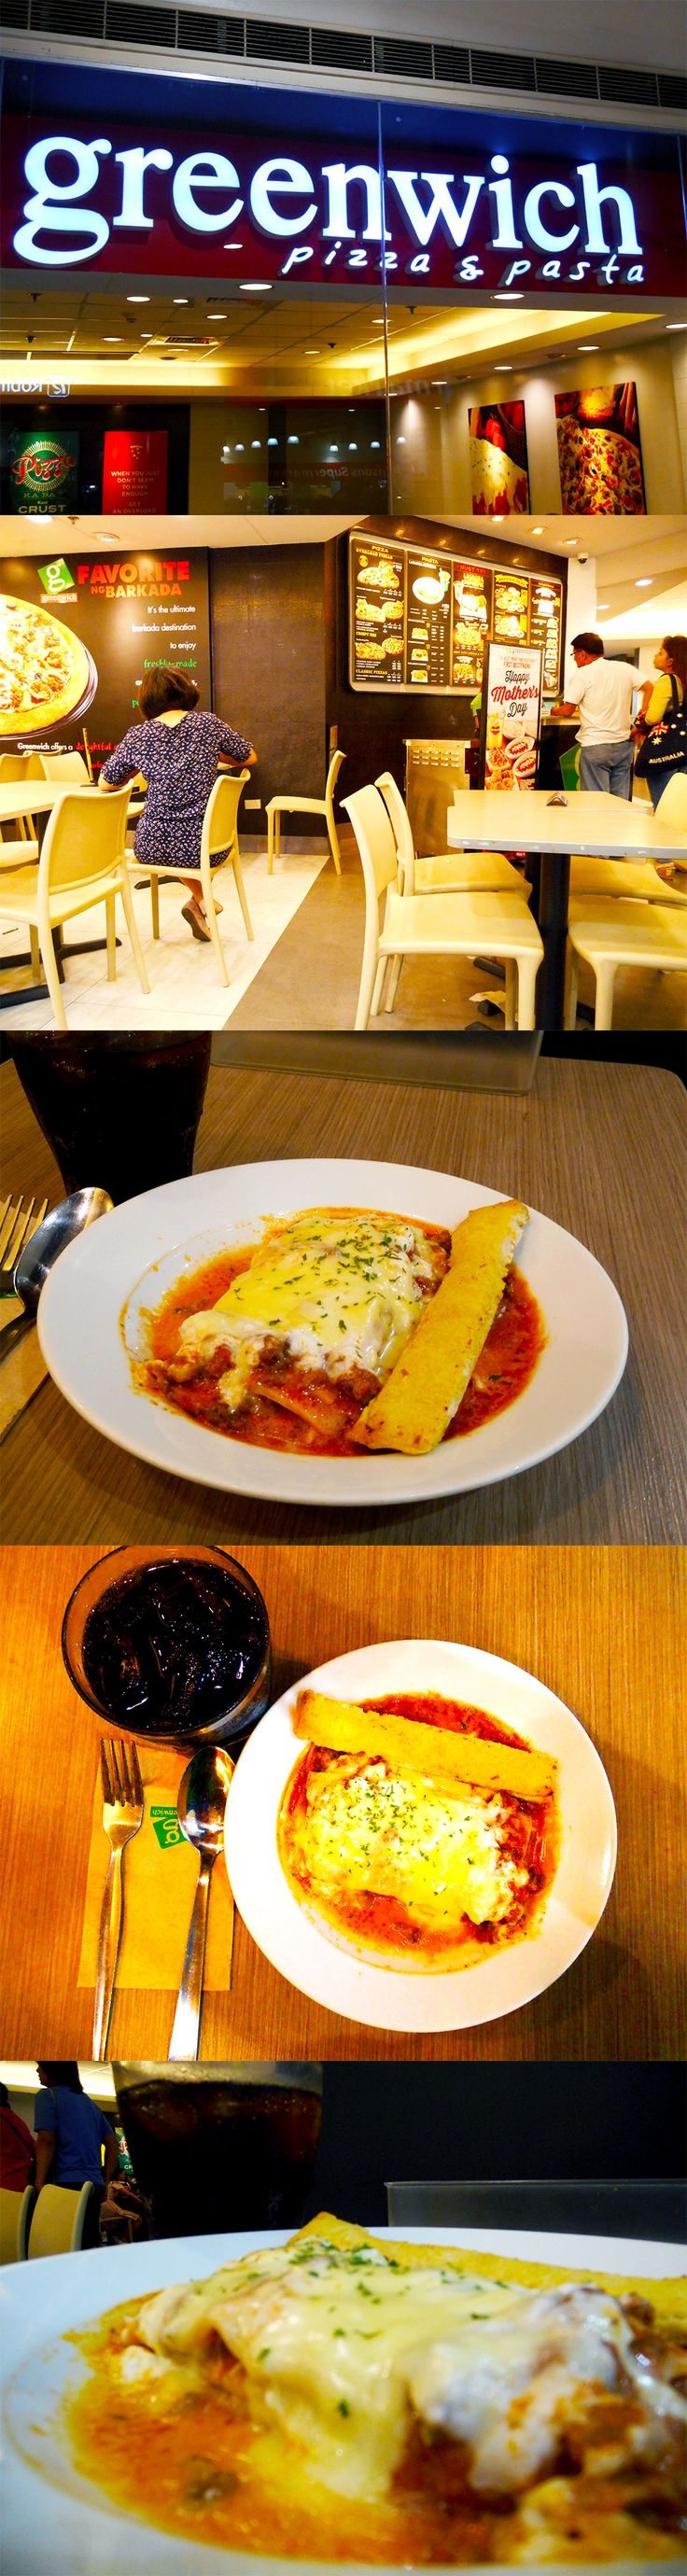 Large lasagne from @greenwichpizza. Had an awesome time!  #lasagna #pasta #greenwich #simplethingsmakemehappy #yum #redsause #littleitaly #homeawayfromhome #foodpic #foodphotography #philippine #worththewait #worthit #merchant #instafood #instafollow #instagood #followback #tagforlikes #ff #l4l